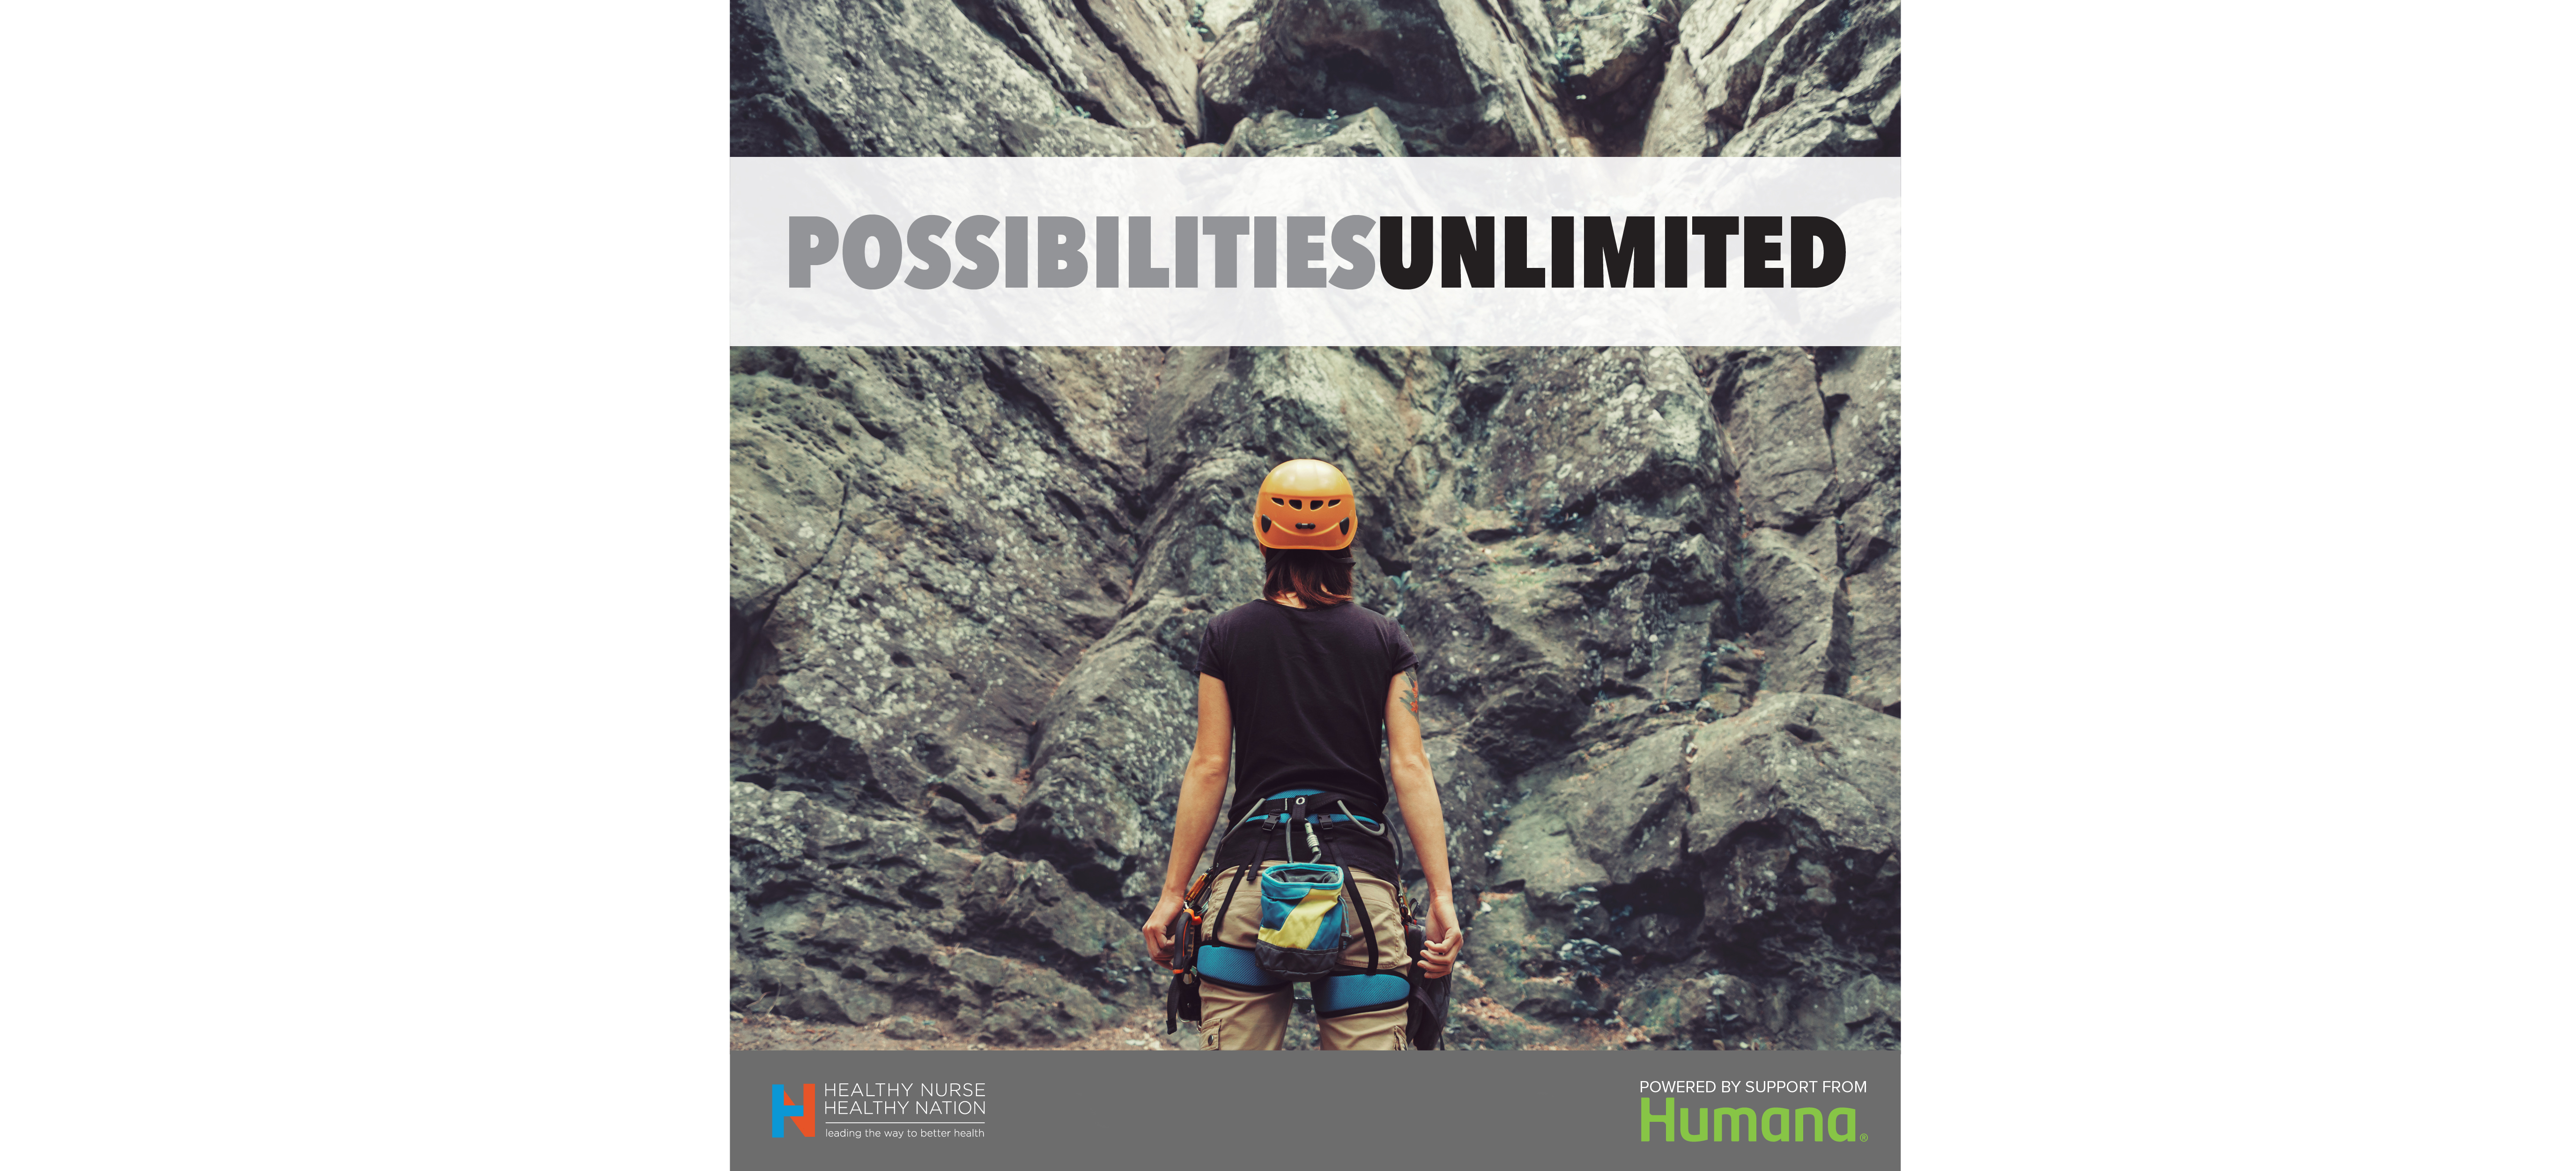 Possibilities Unlimited, powered by Humana 58